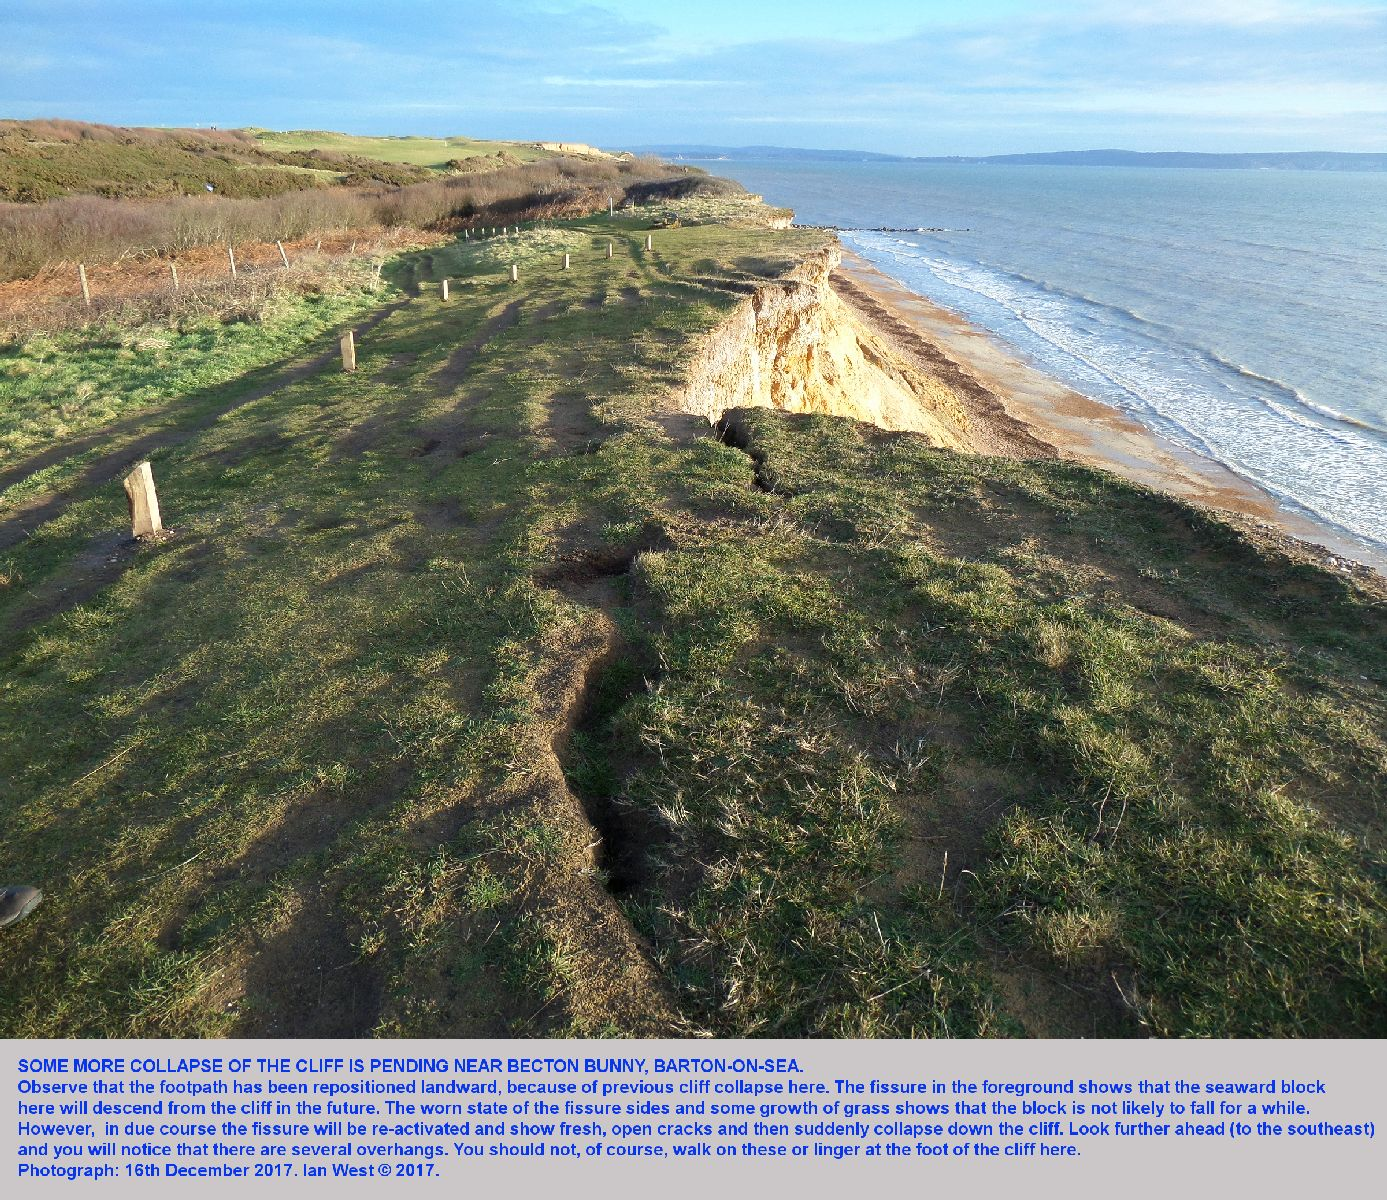 Fissures in the grassy cliff top near Becton Bunny, Barton-on-Sea, Hampshire, as seen on the 16th December 2017